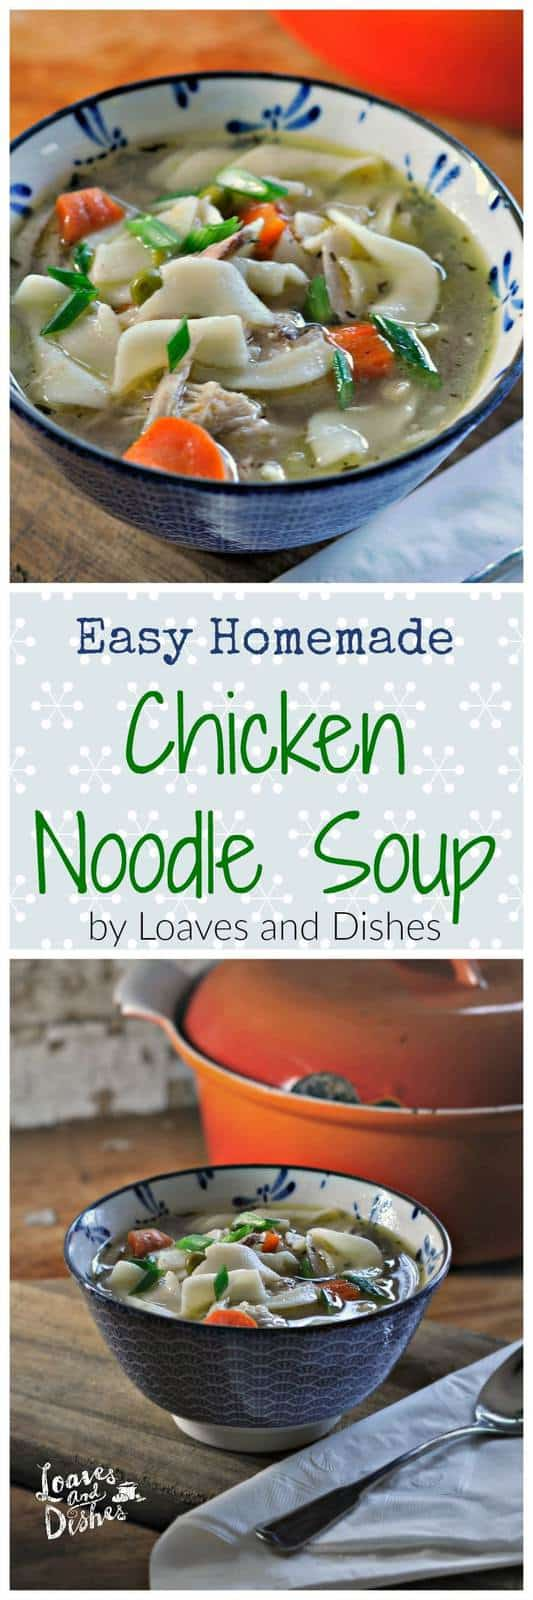 Need an easy homemade chicken noodle soup recipe? Like your soup with carrots, celery, shallots, garlic and other homey spices? Need a gift for someone who is sick? Need some soup for yourself? Make this one in less than an hour. Feel better now!